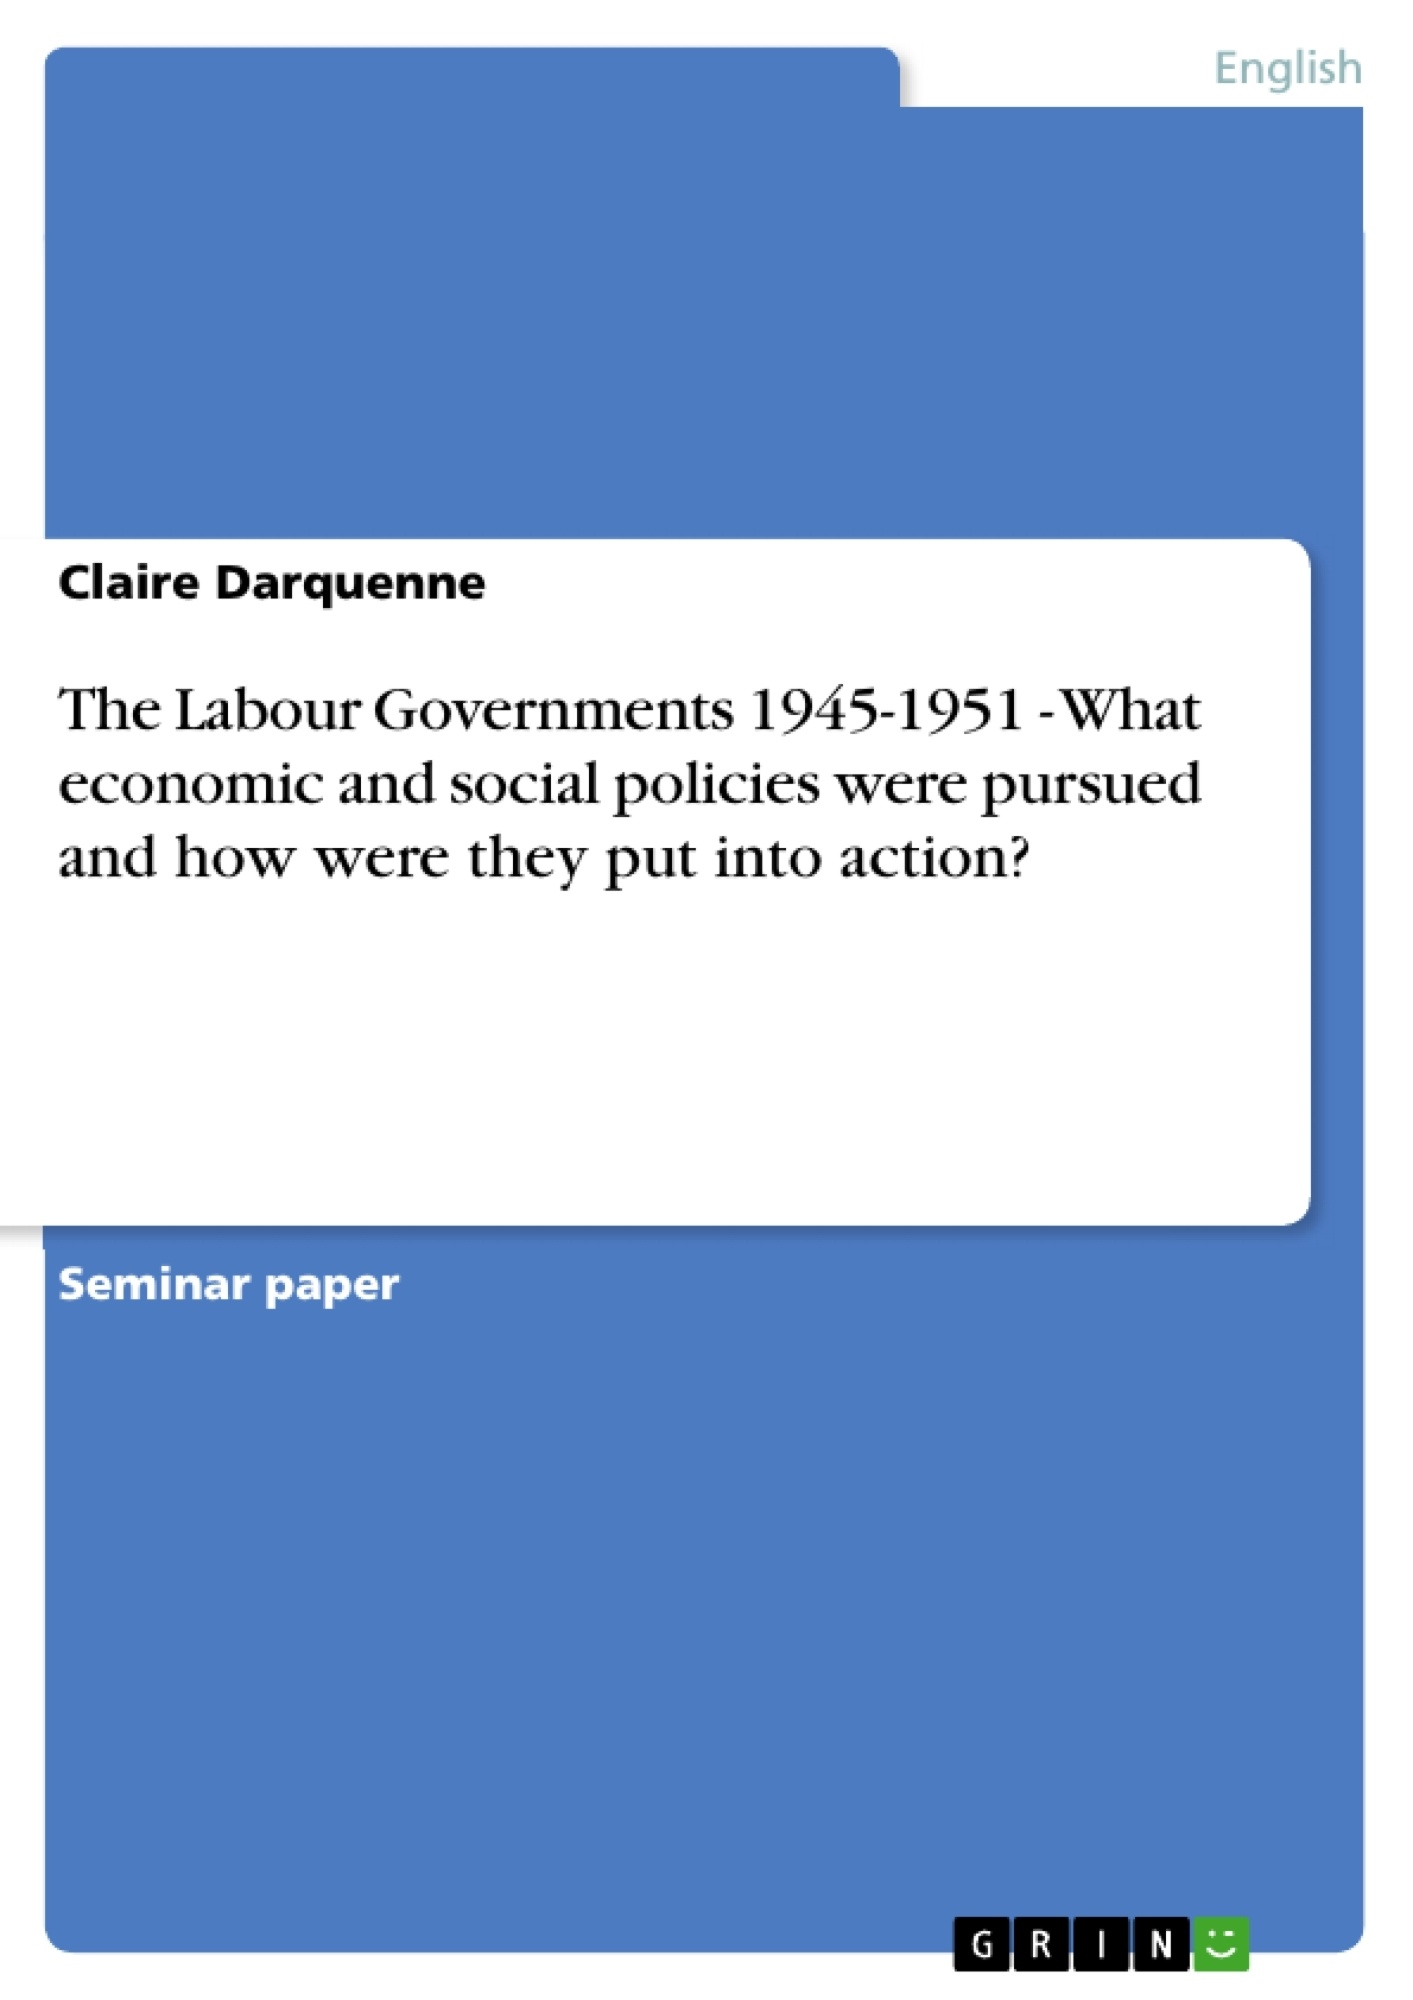 Title: The Labour Governments 1945-1951 - What economic and social policies were pursued and how were they put into action?